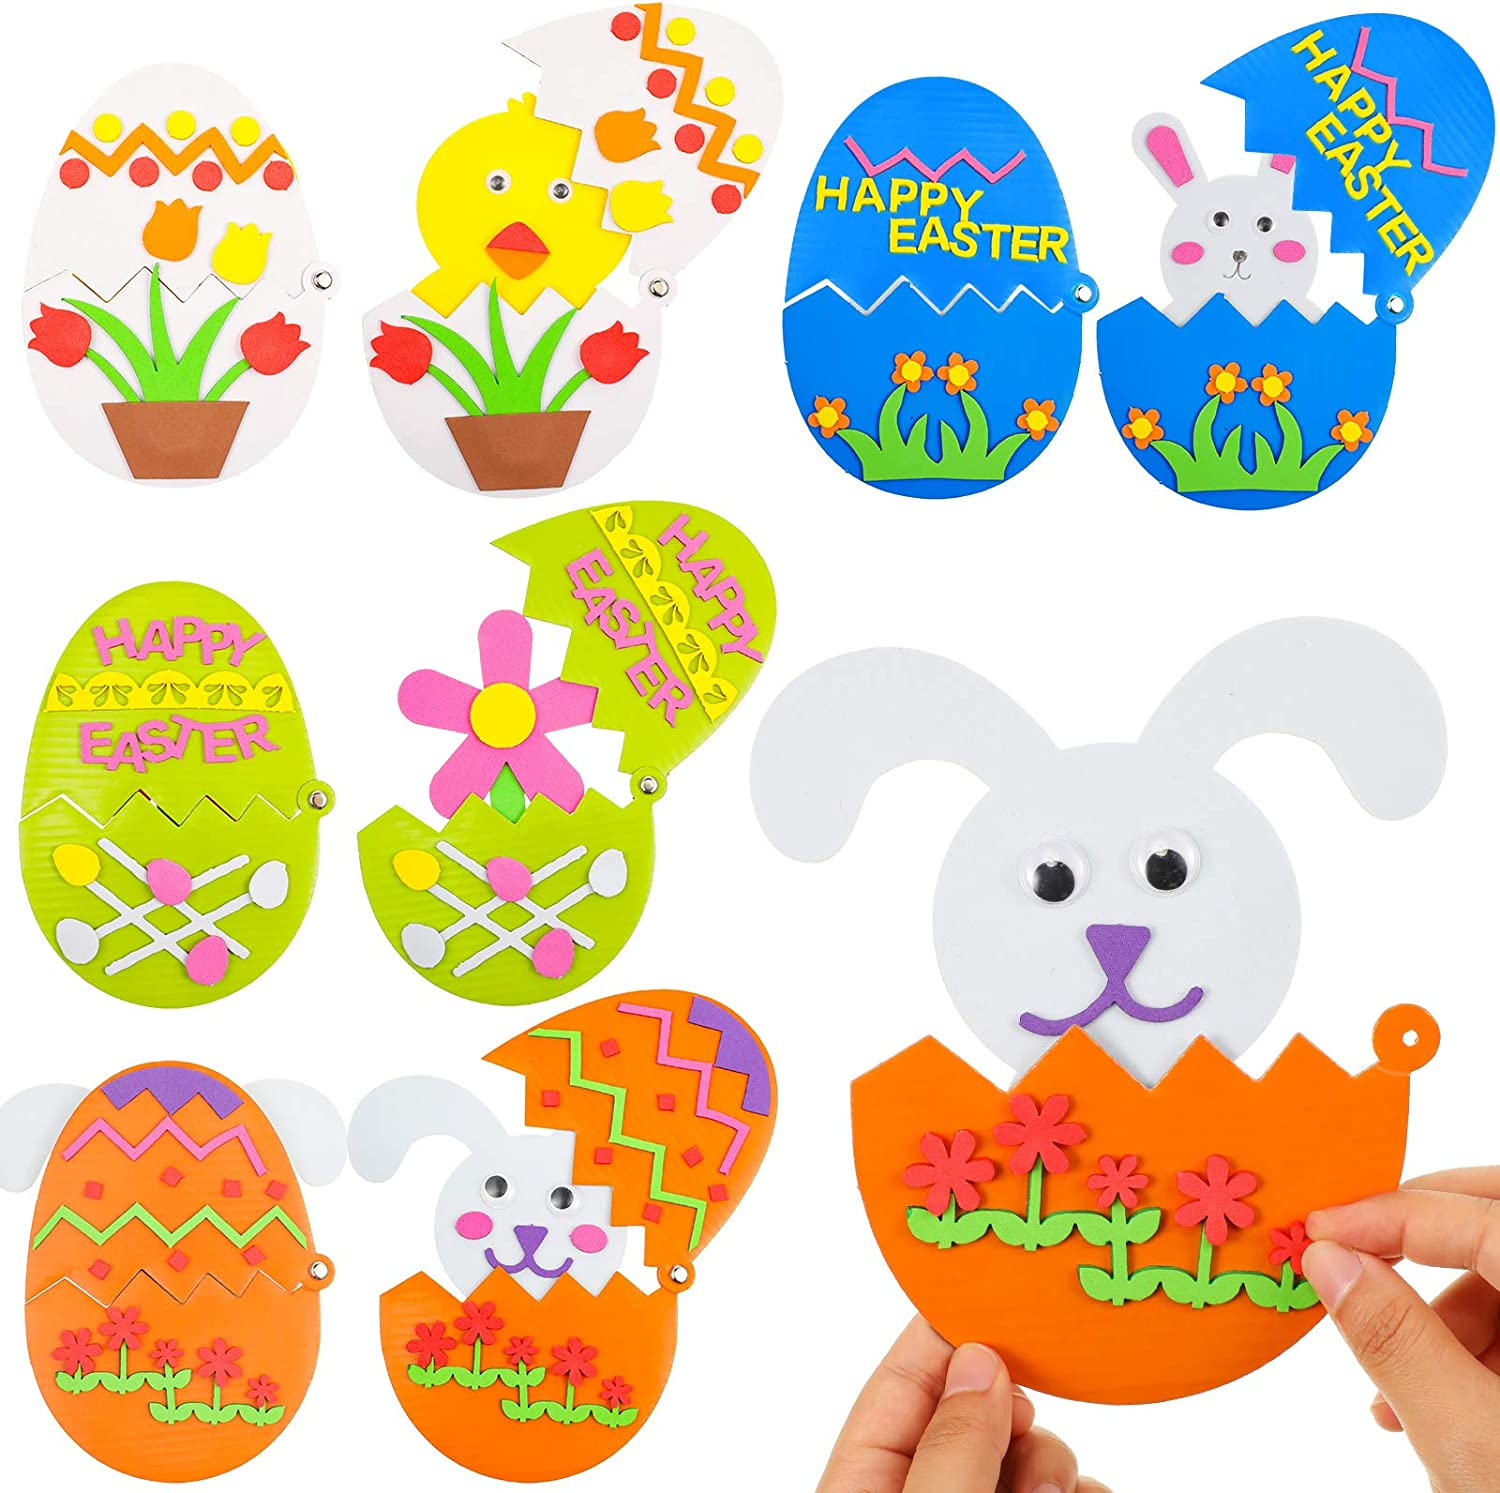 8 Piece Easter Craft Kit Foam Easter Eggs DIY Easter Foam Stickers Foam Ornaments Kits Easter Egg Character Ornament for Kids Favor Handmade Crafts Easter Day Decoration Supplies